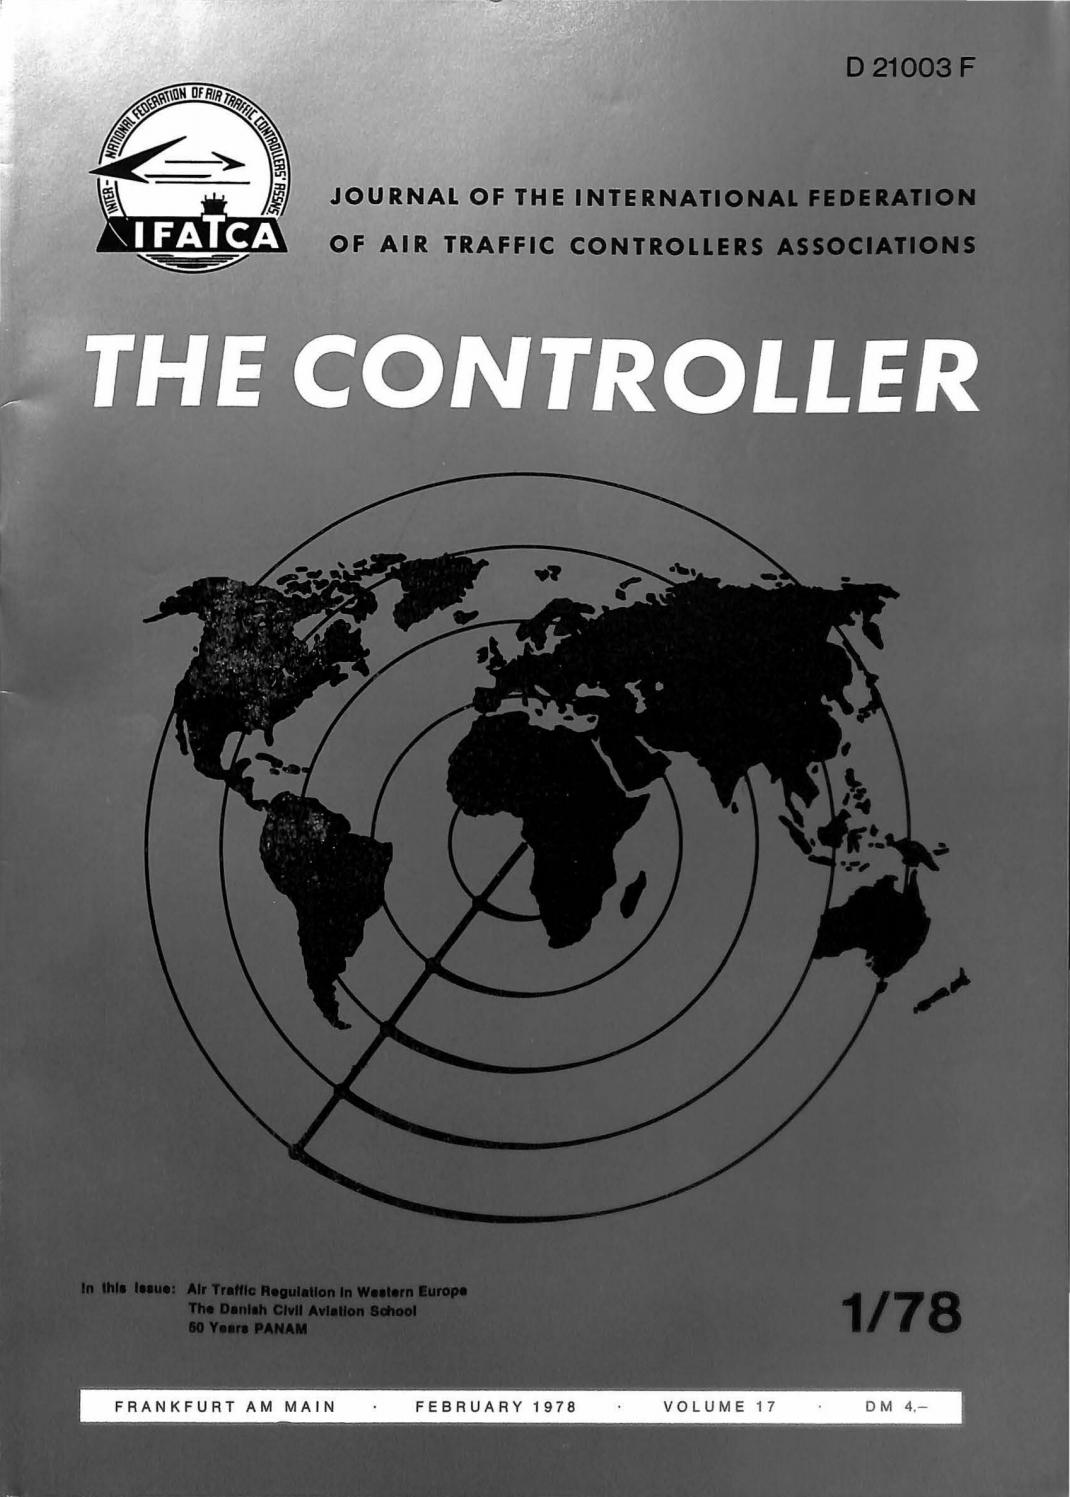 IFATCA - The Controller - February 1978 by IFATCA - issuu